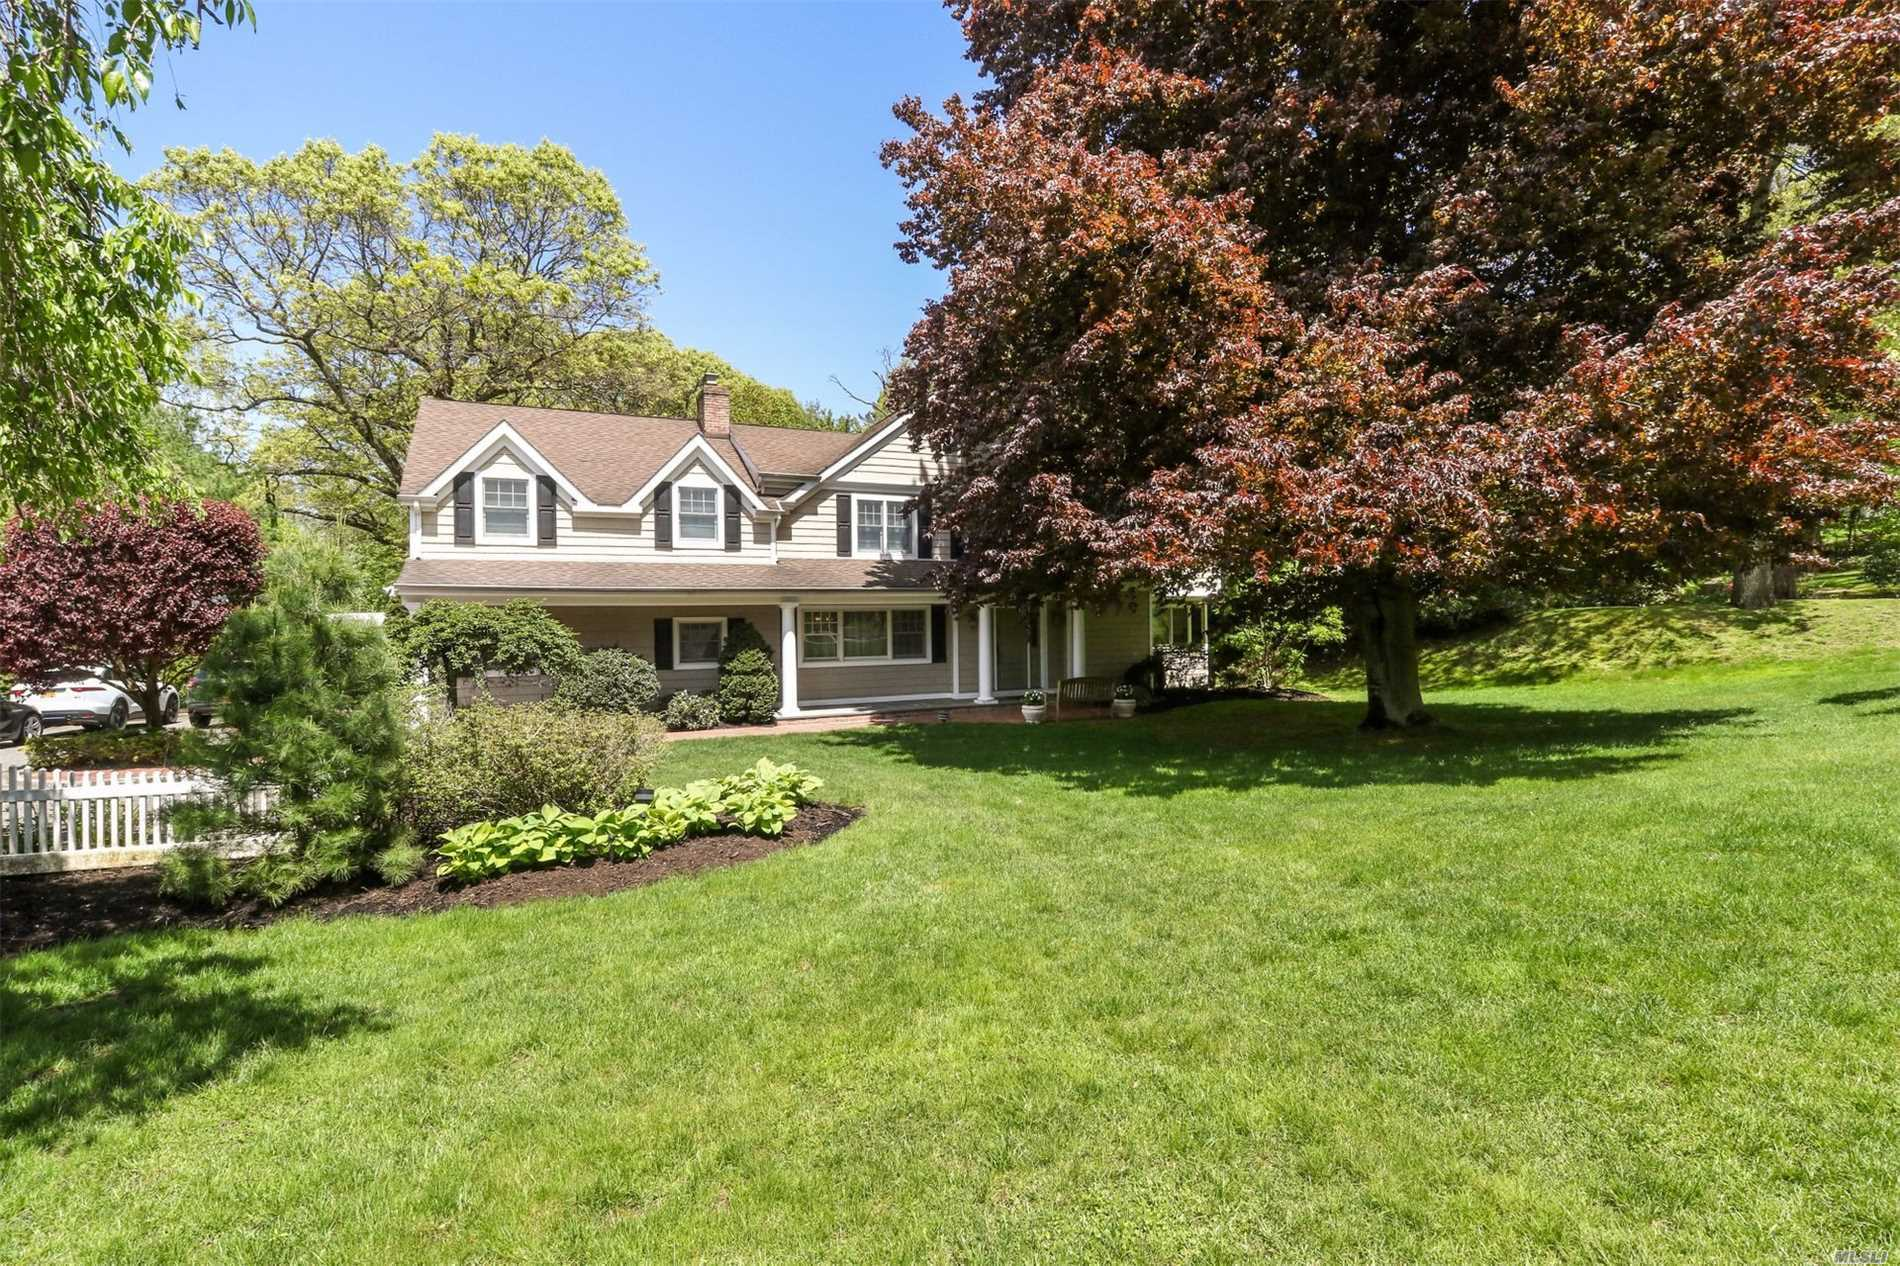 Magnificent home in The Gates of Woodbury. This exquisite 7 bedrm colonial is custom built & renovated to perfection. The gourmet Chef's kitchen has every amenity & opens to the XL Dining Rm w/fpl, Den w/fpl, Library w/bar & Living Rm. Entire house is gas. The 2nd floor has a large Mster Ste w/fpl, balcony, luxury spa bath w/radiant ht + 2 HUGE WIC, in addition to 4 other bedrms & 3 baths + laundry. Beautiful property w IG pool, paver patio & full house generator. Syosset SD-- WW Elem/HBT.